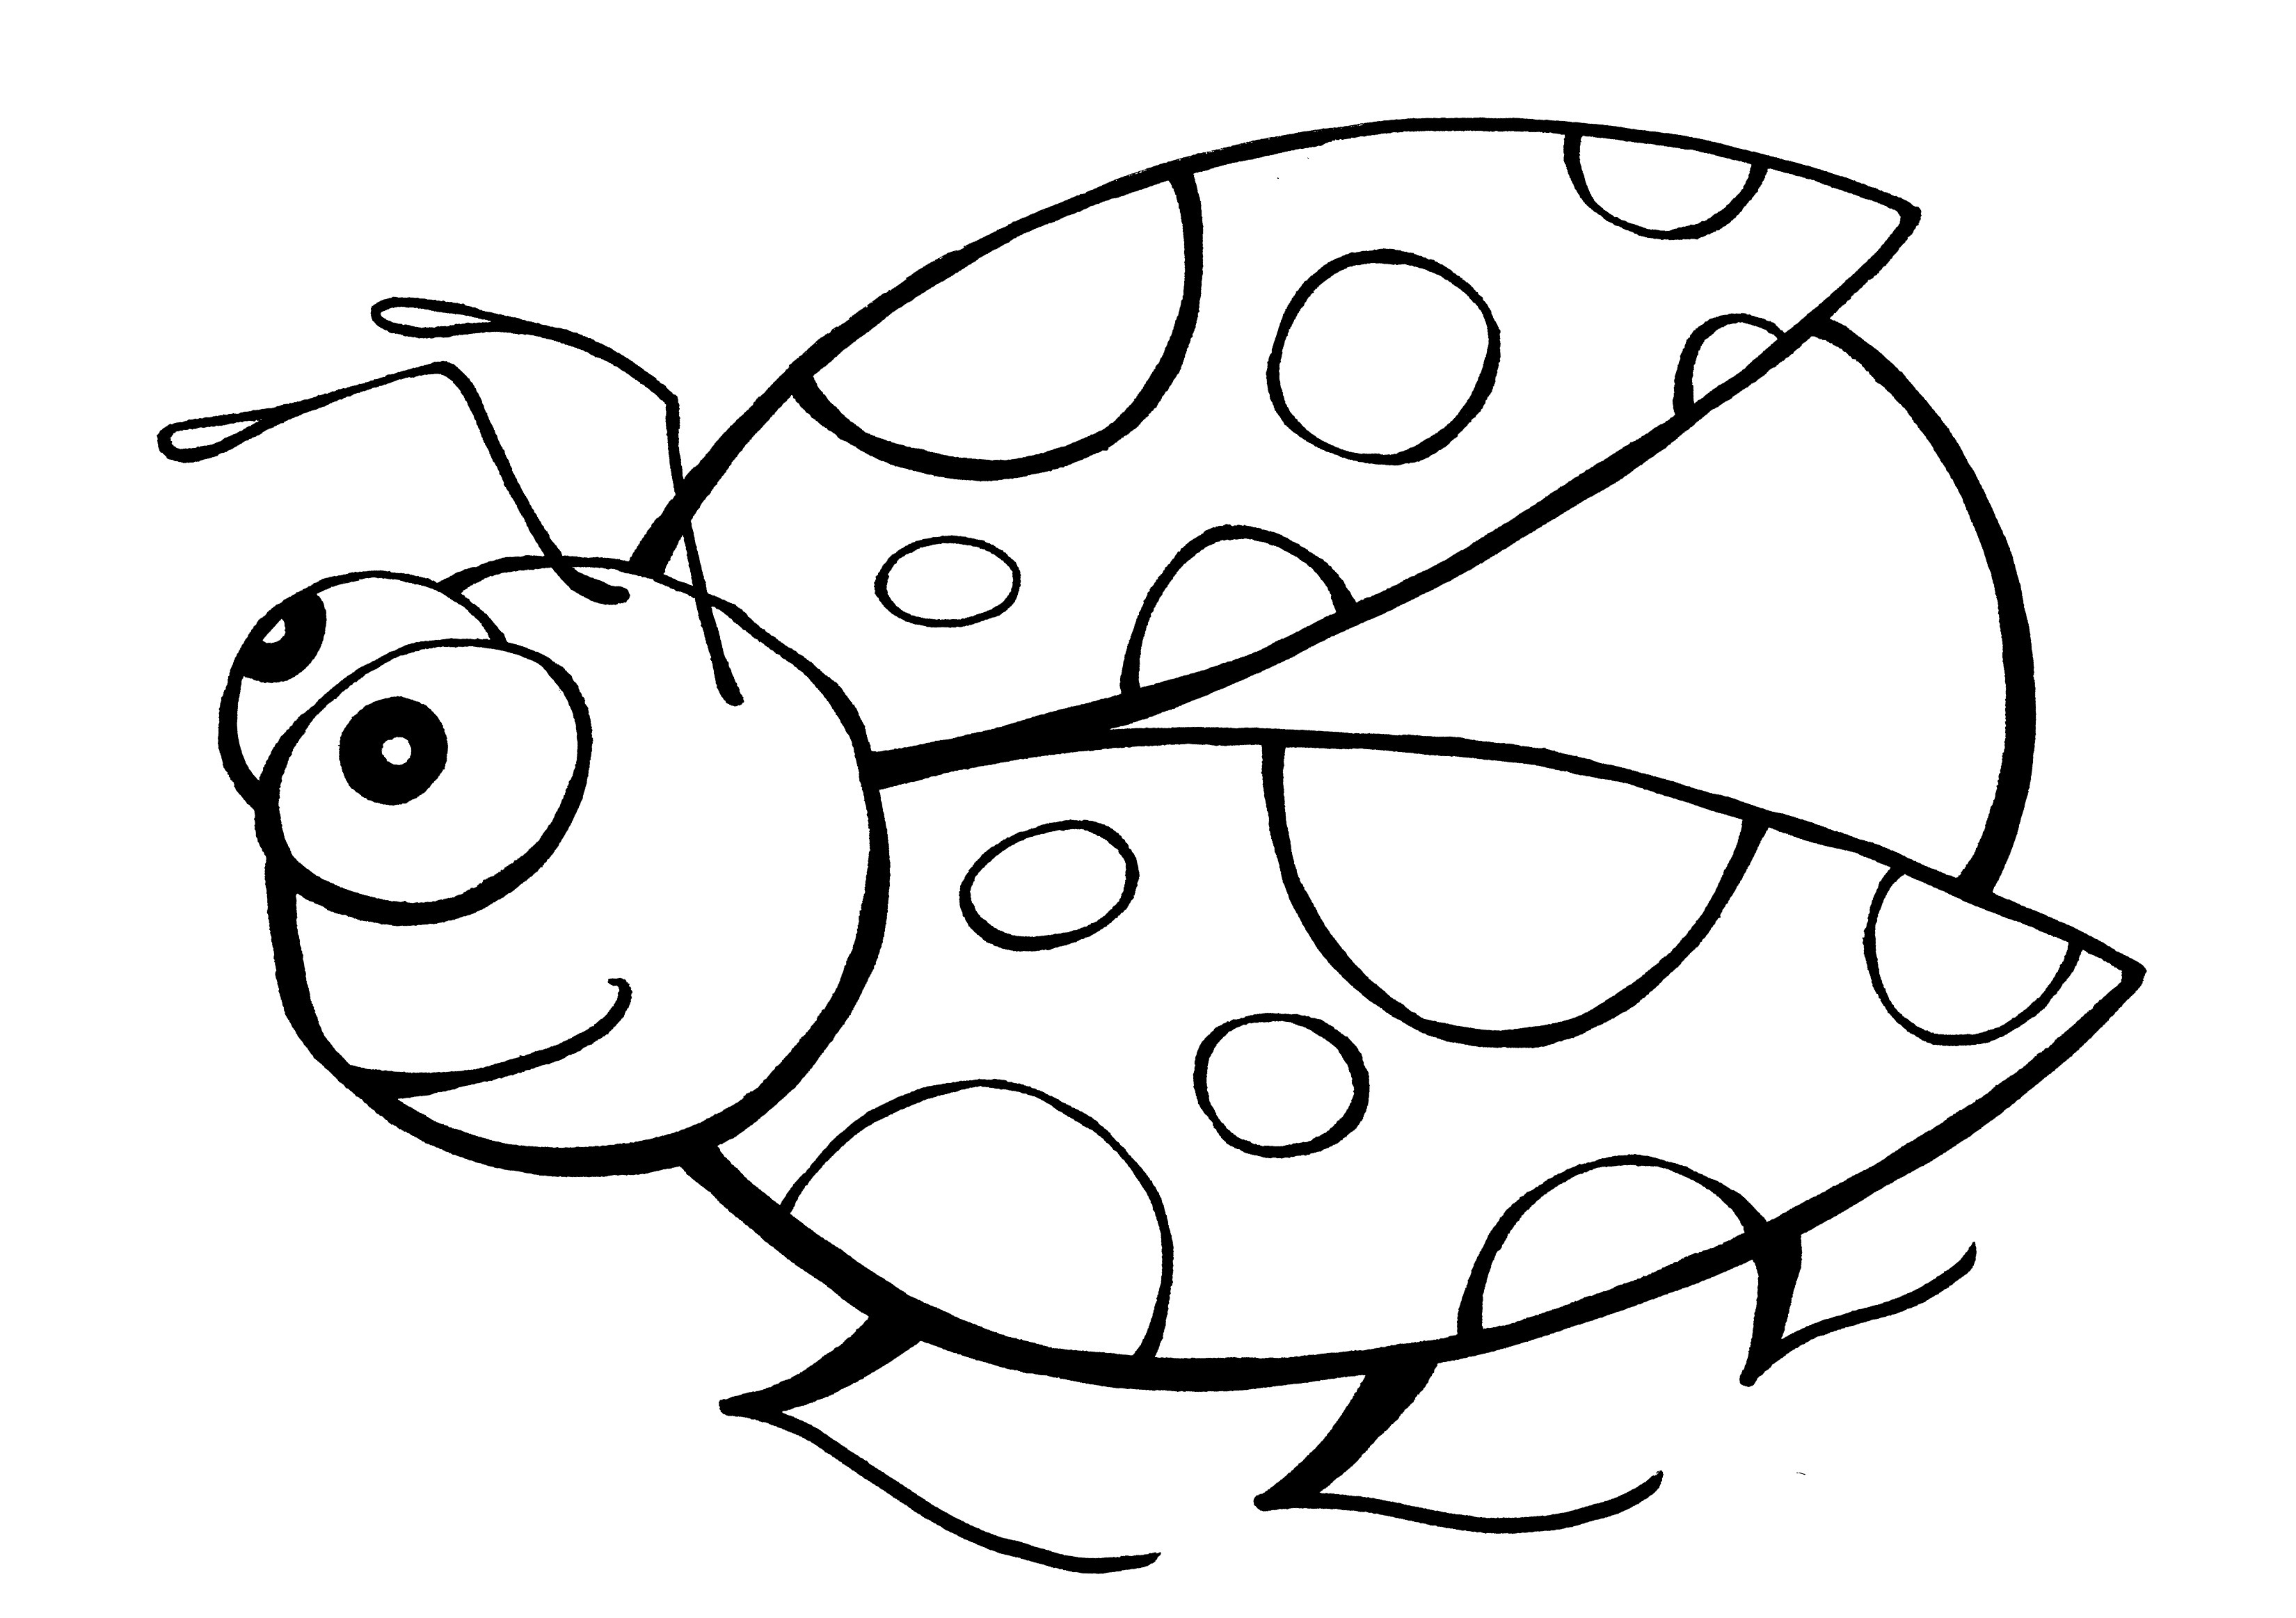 Ladybug Coloring Pages To Download And Print For Free